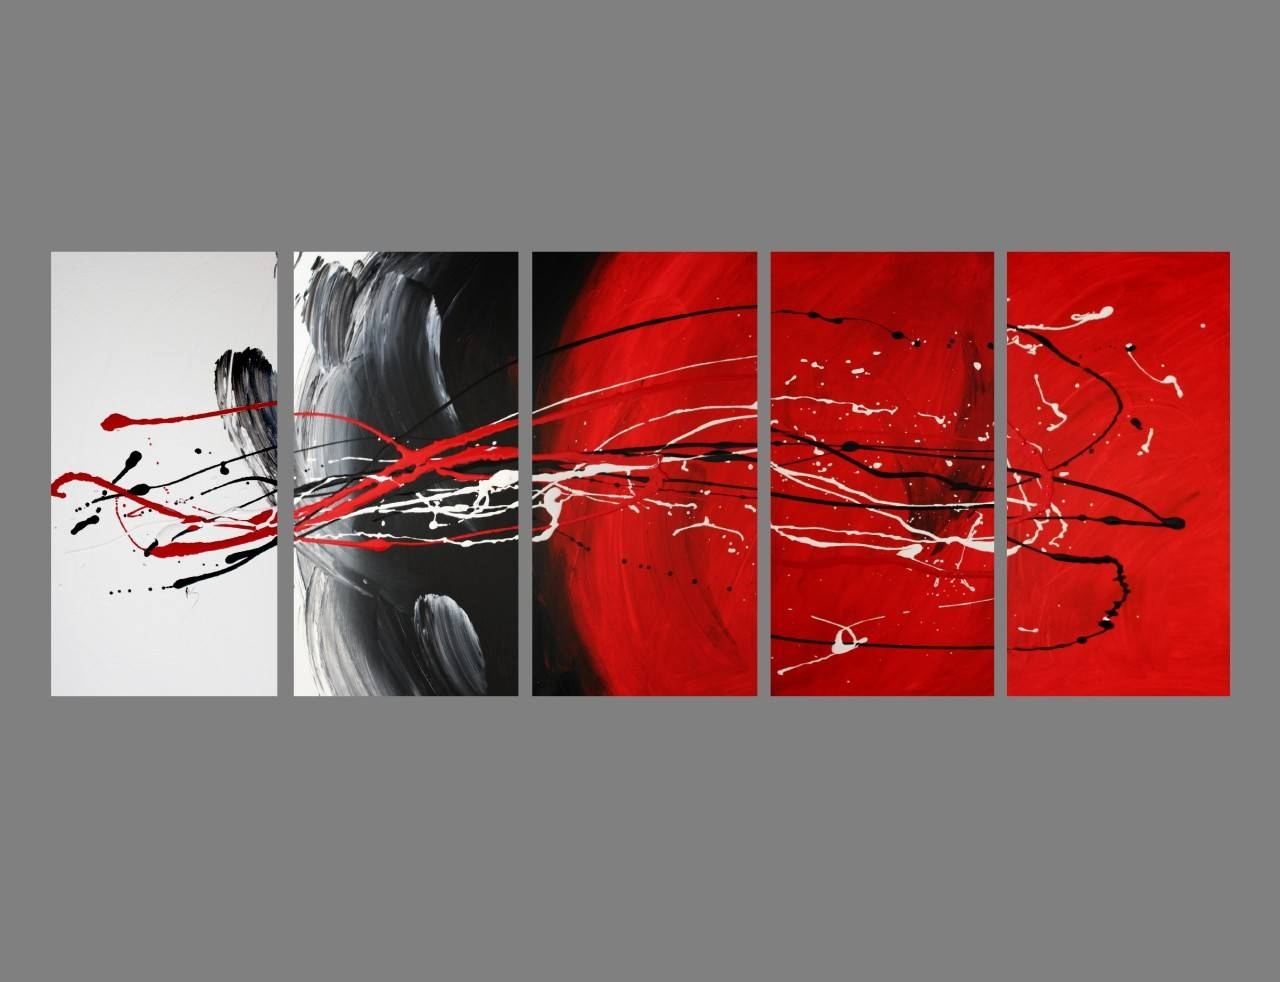 Abstract Canvas Painting Red Black White Modern Wall Art Artwork Regarding Most Recent Black And White Wall Art With Red (View 4 of 25)